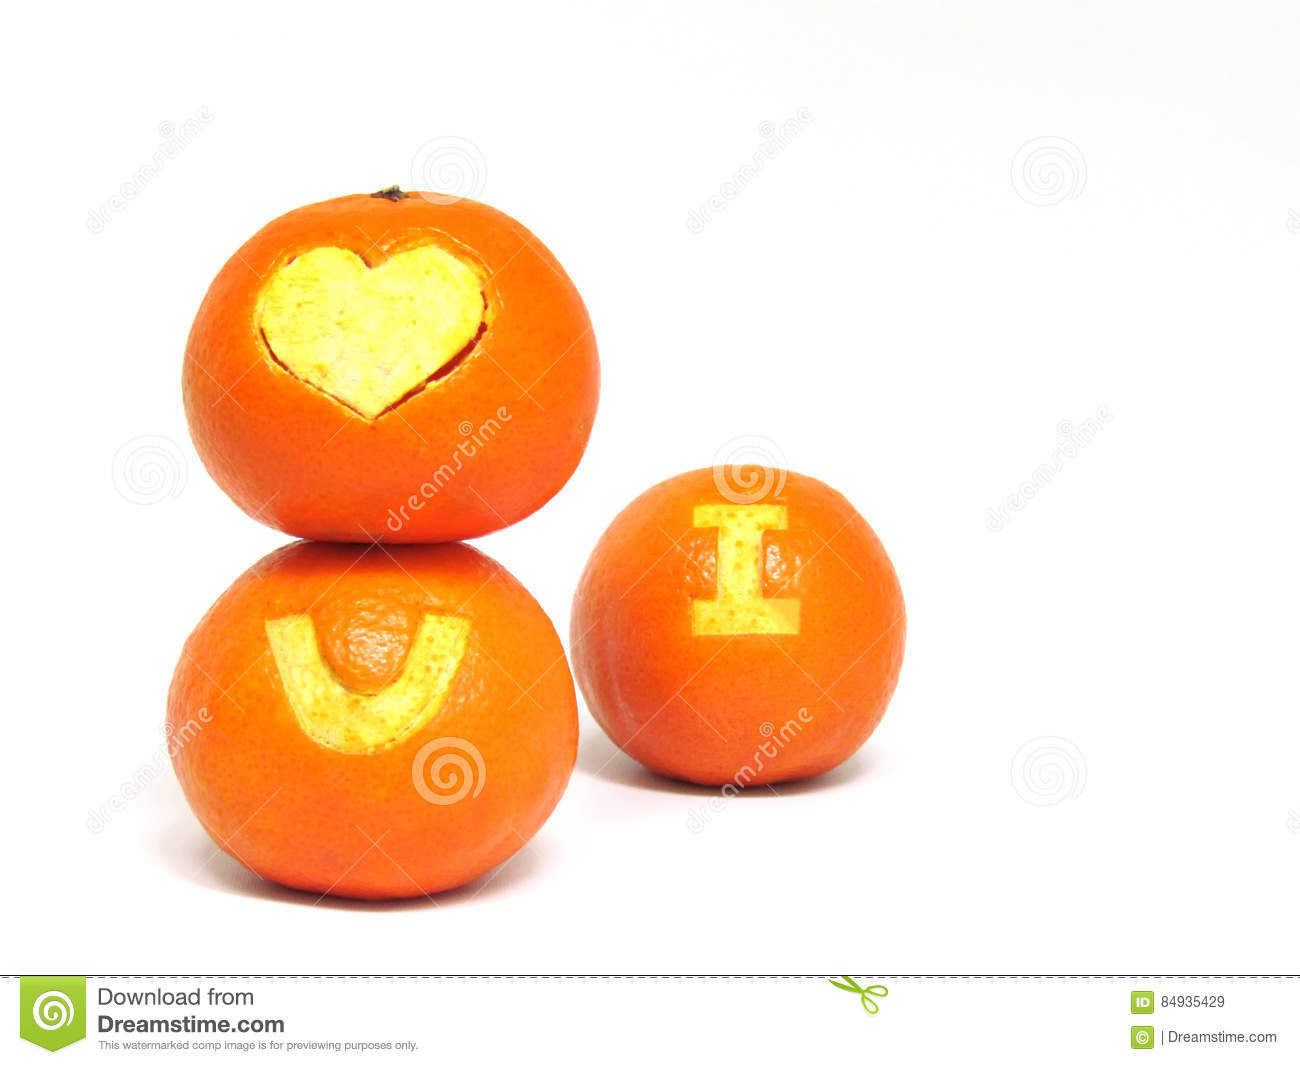 Symbol i love you images symbol and sign ideas orange fruits healthy organic oranges with symbol i love u orange fruits healthy organic oranges with biocorpaavc